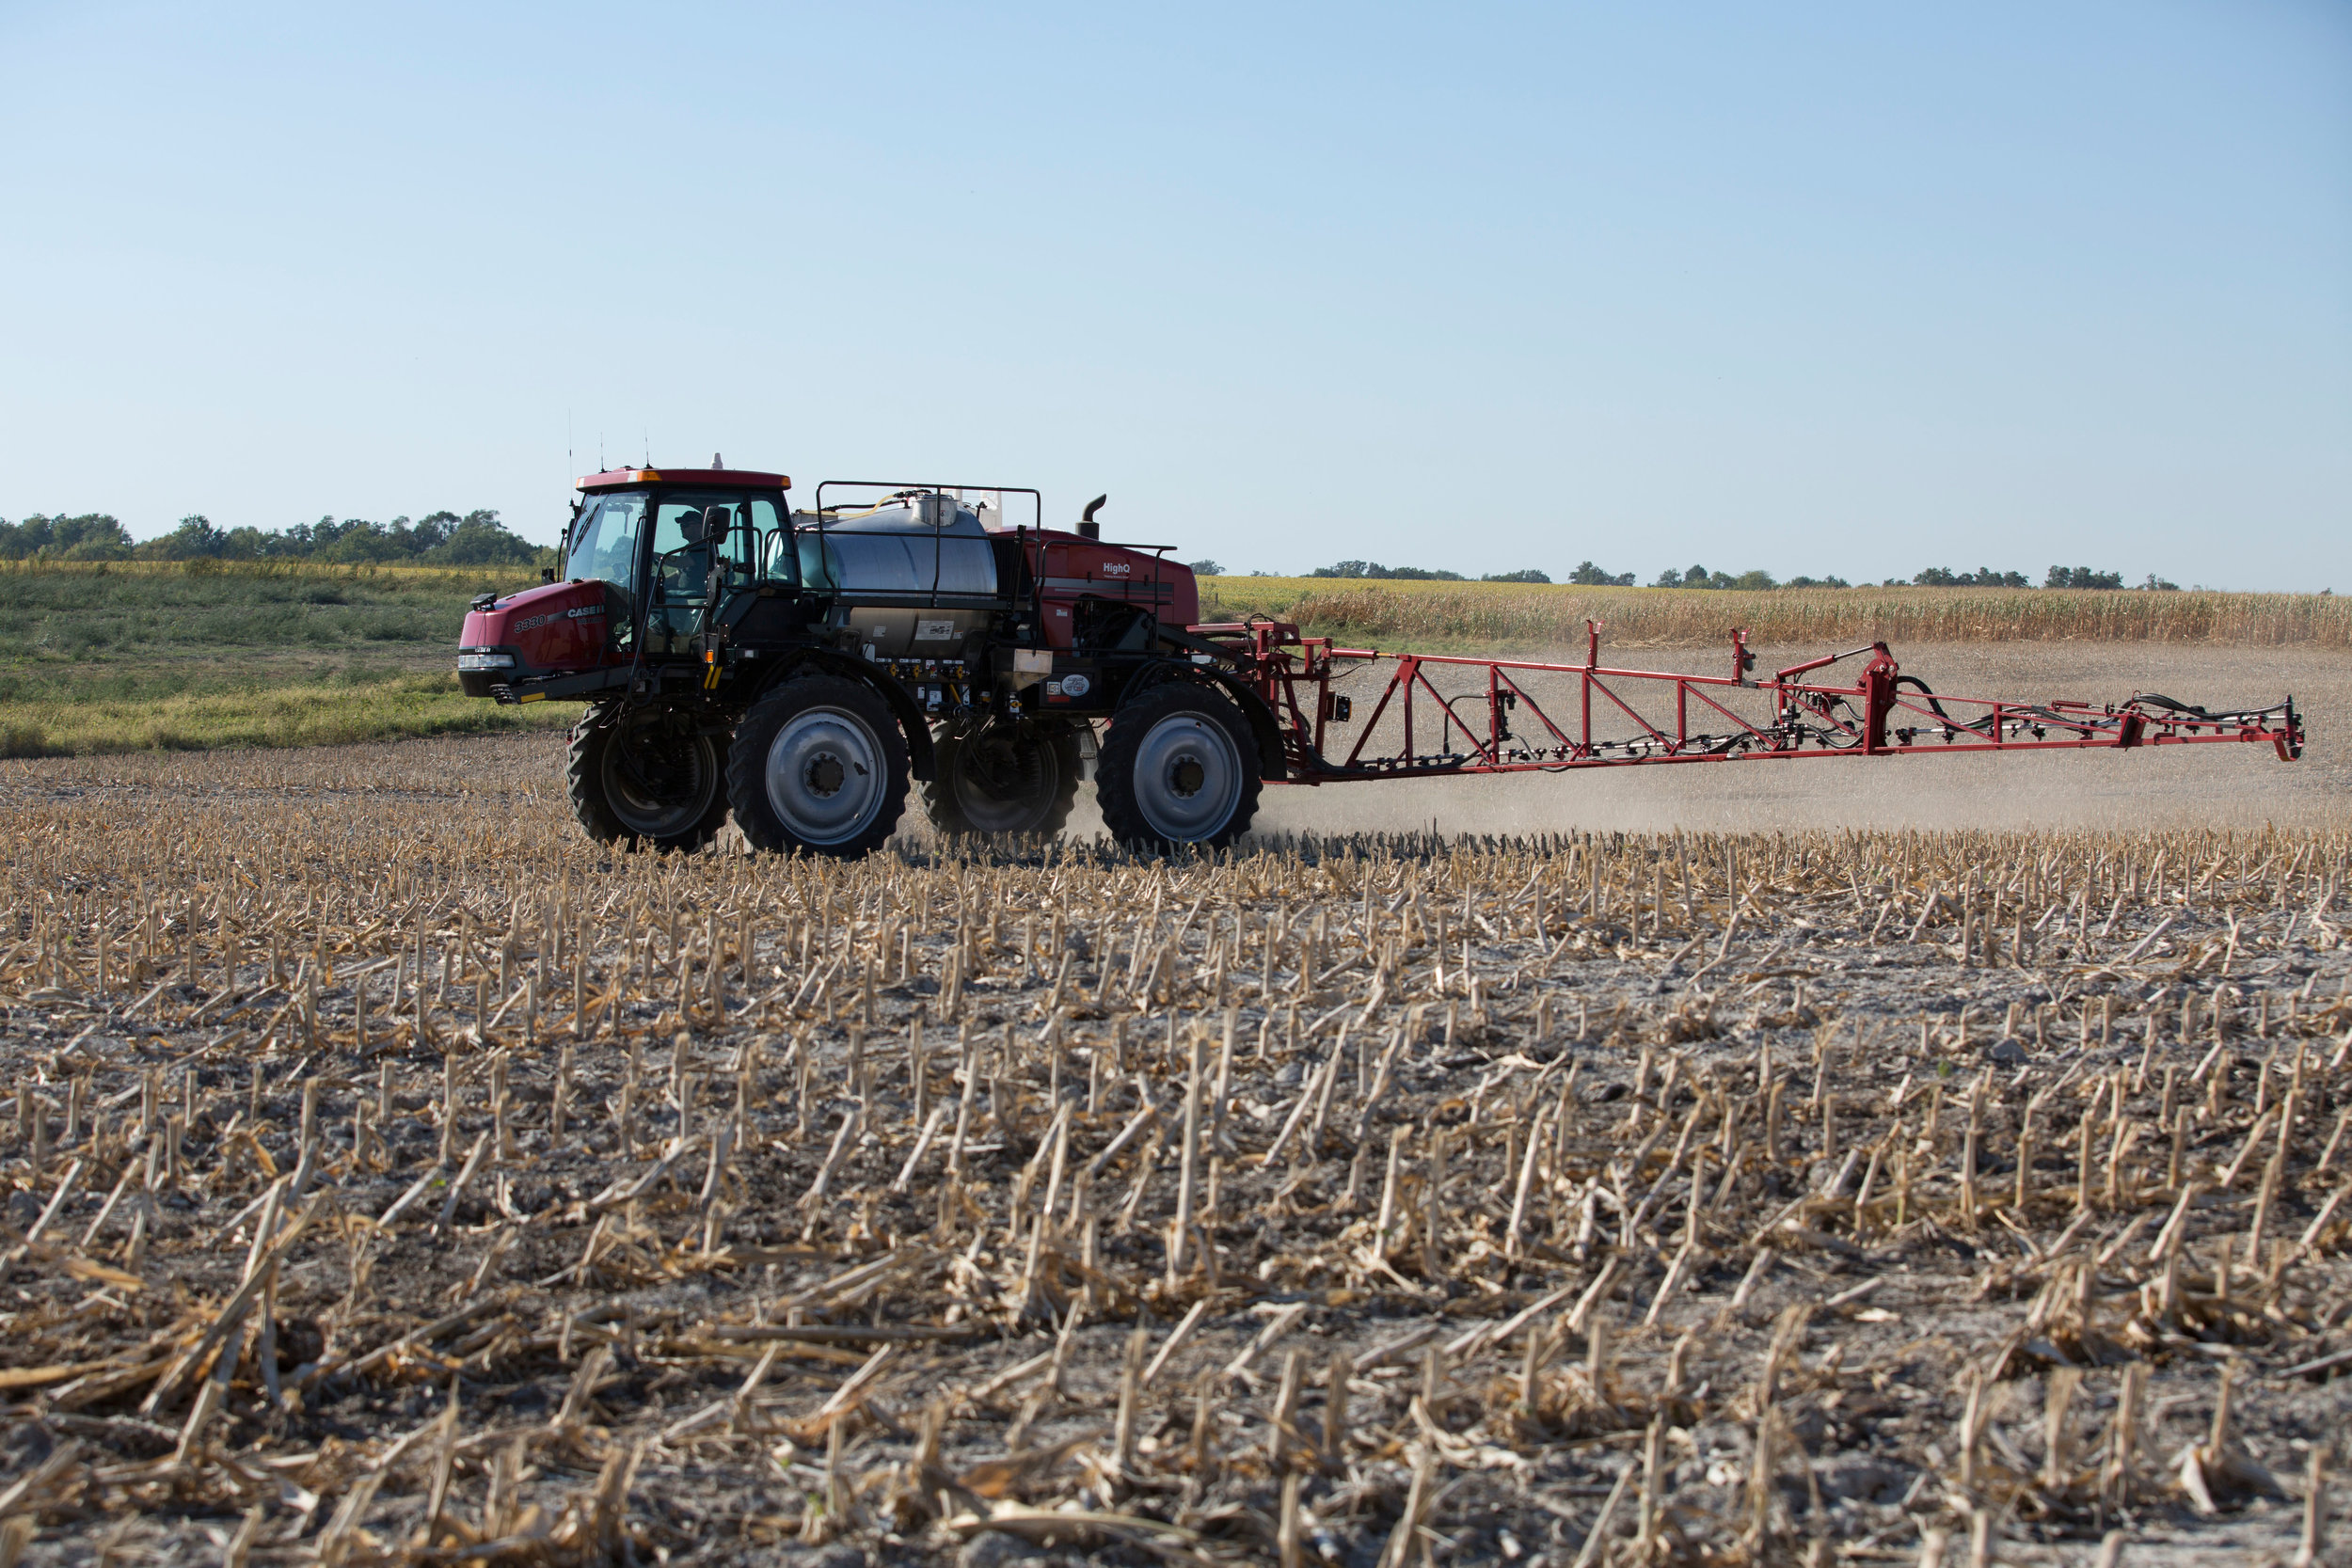 Image of sprayer in field by United Soybean Board.